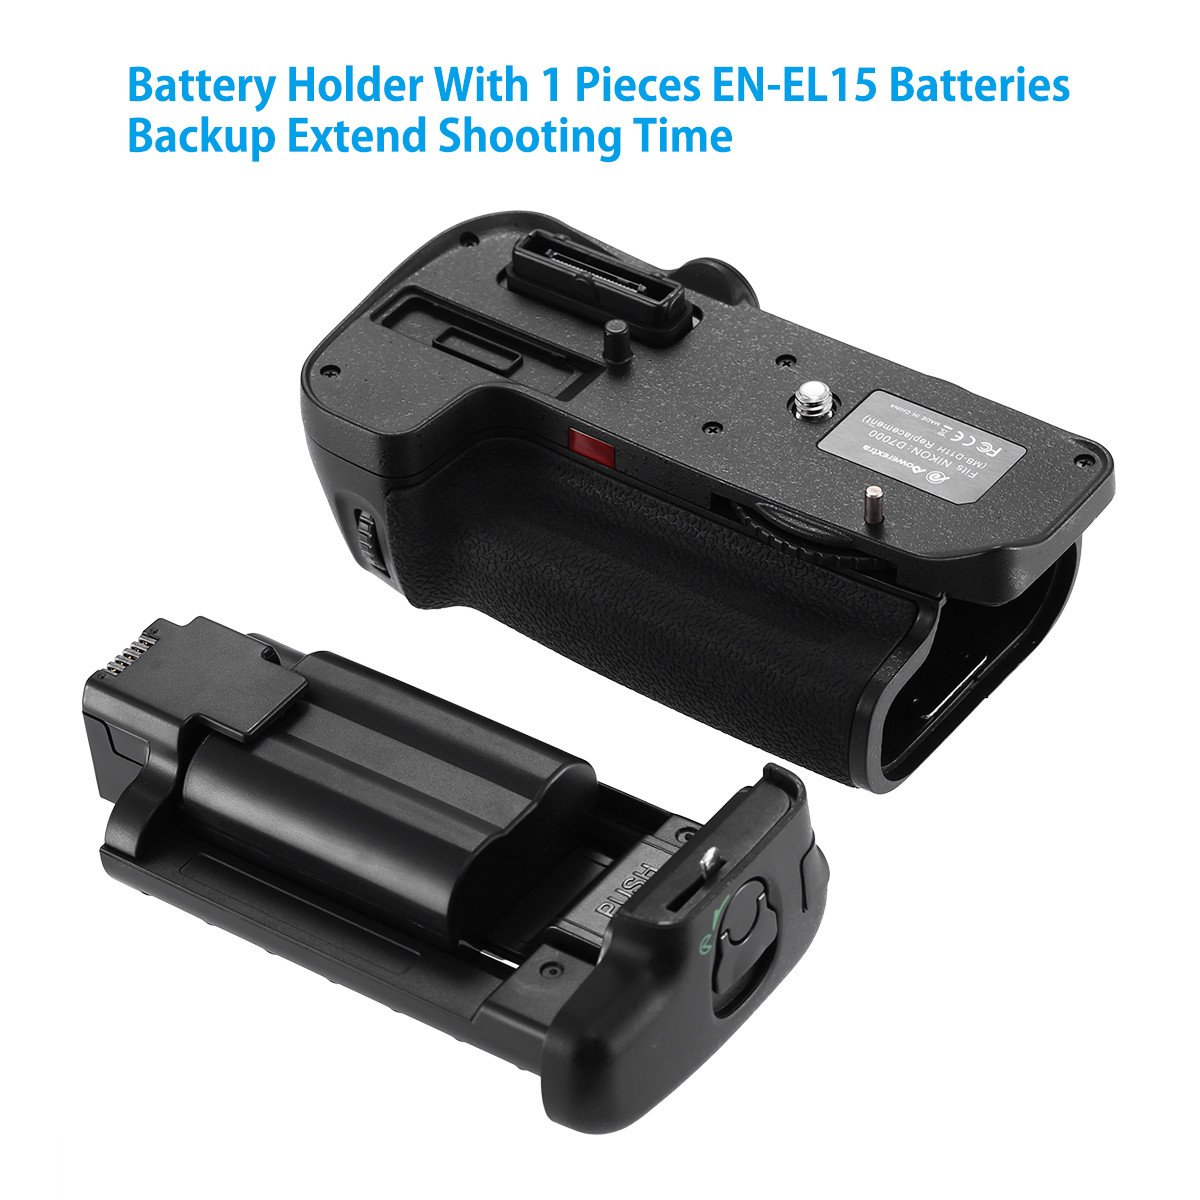 2 /× High Capacity 2200mAh EN-EL15 Batteries Powerextra MB-D15 Battery Grip AA-Size Battery Holder with Infrared Remote Control for Nikon D7100 D7200 Digital SLR Camera